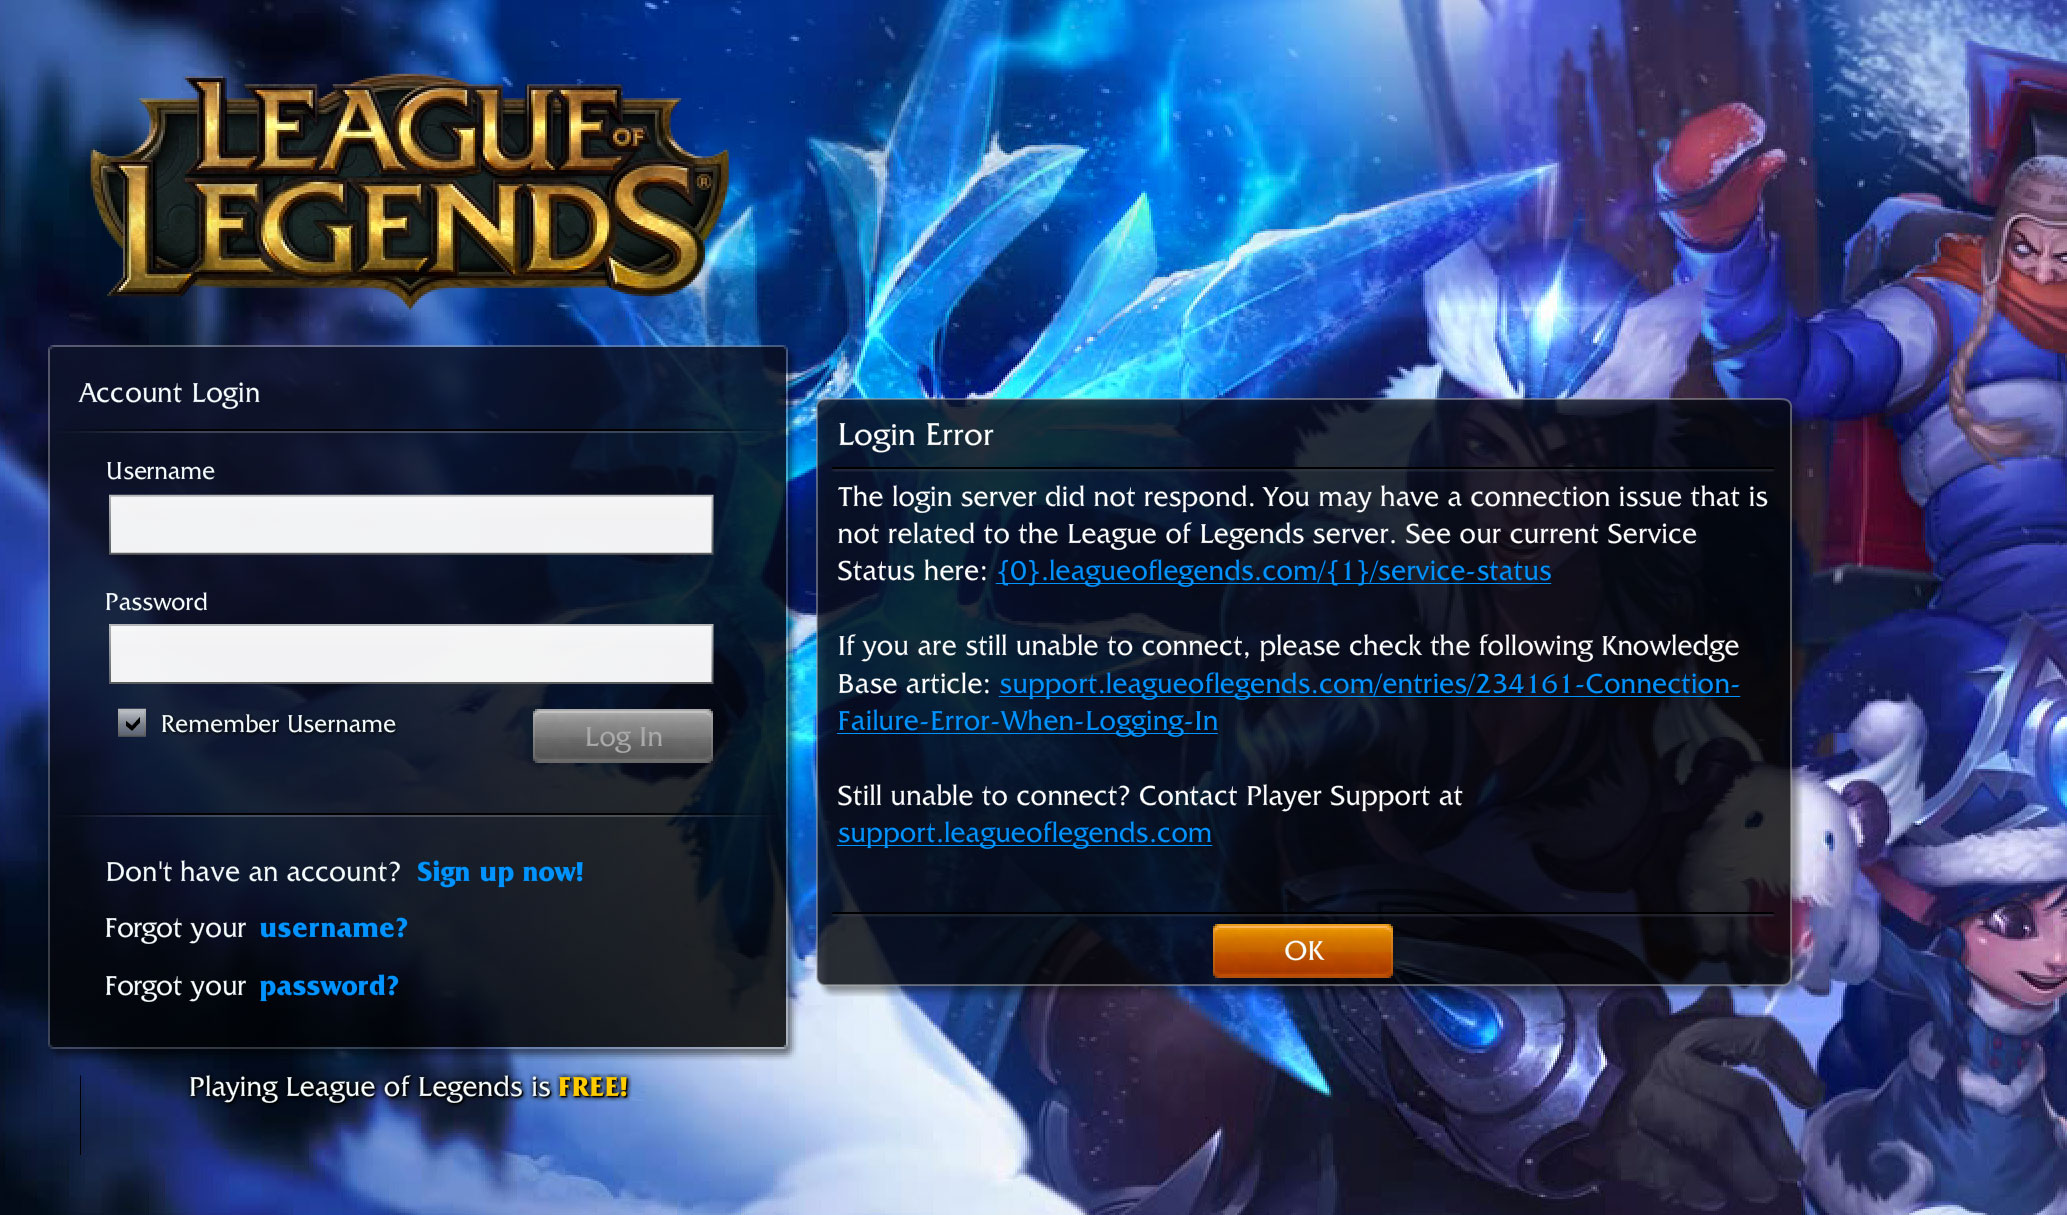 Hackers Claim Takedown Of Battle.net, League Of Legends, EA.com